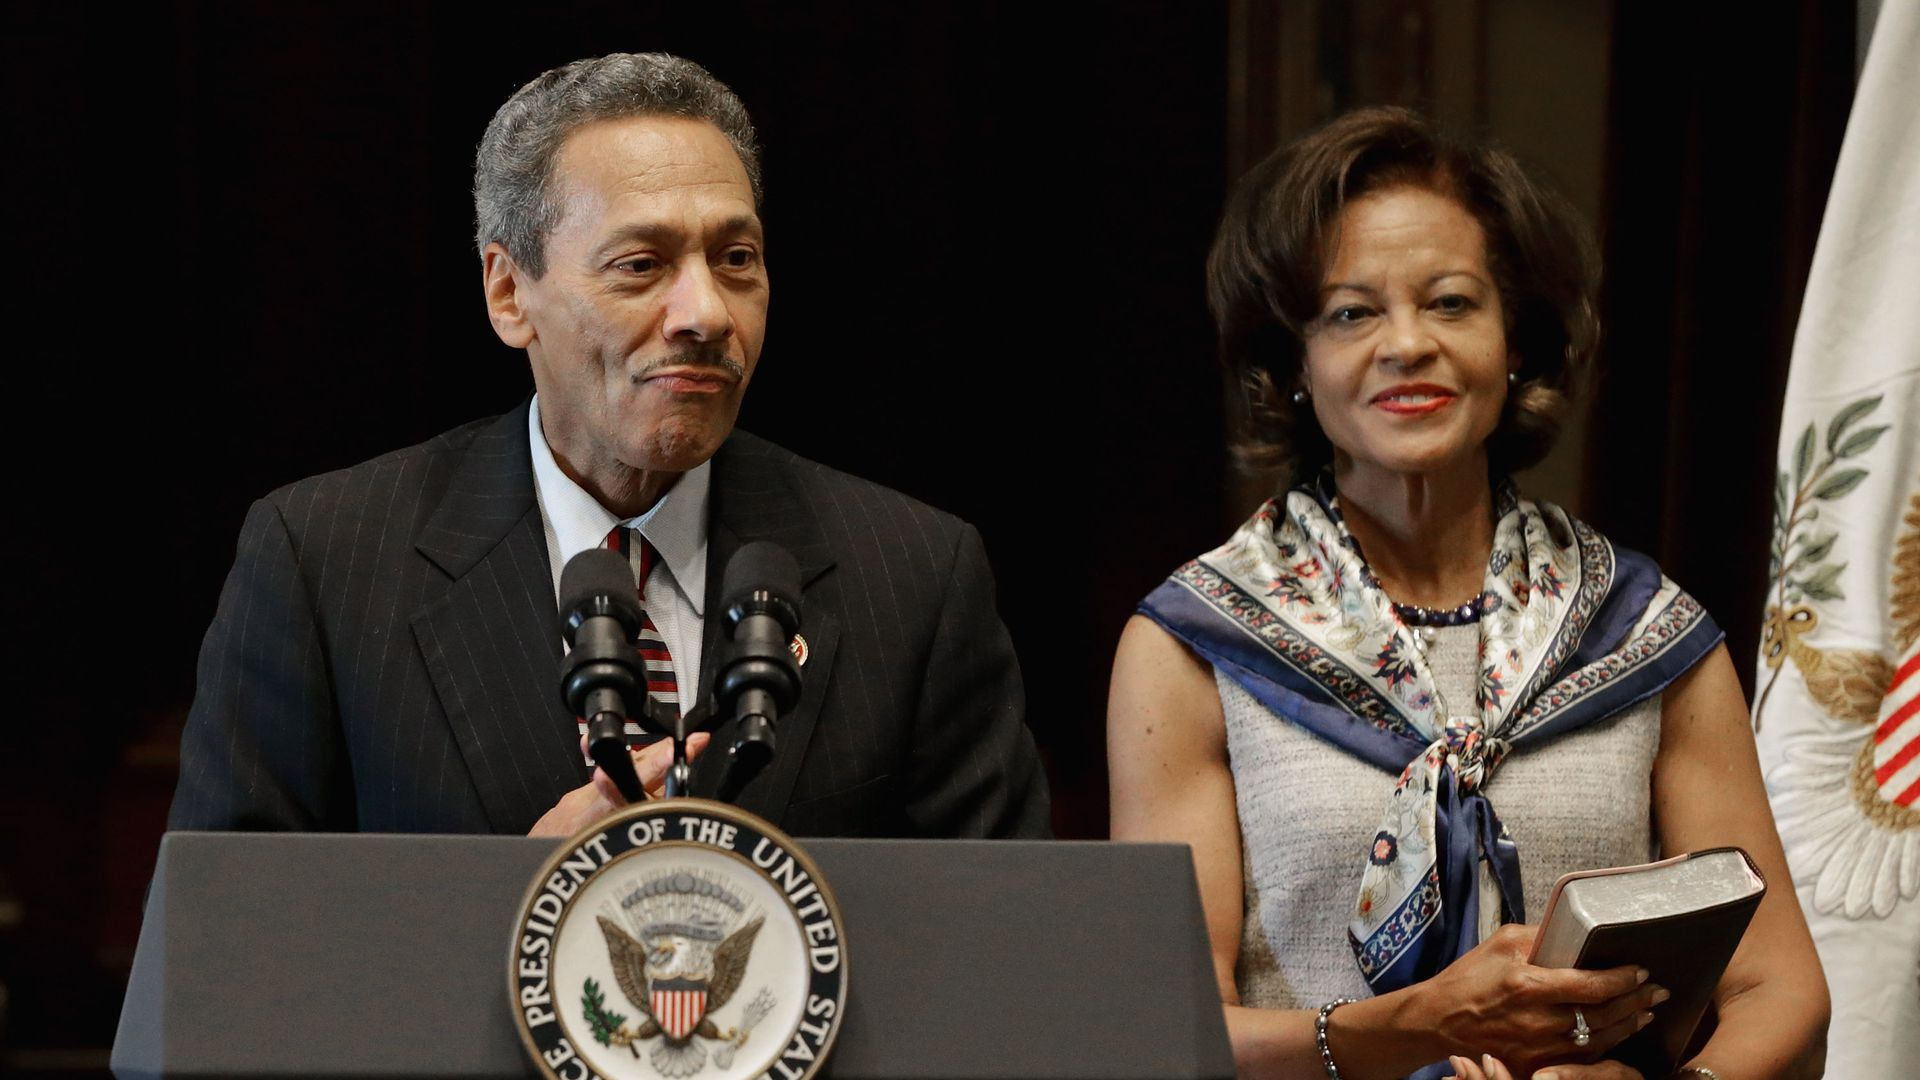 Federal Housing Finance Agency Director Mel Watt  delivers remarks after being sworn. His wife Eulada Watt  stands by his side.